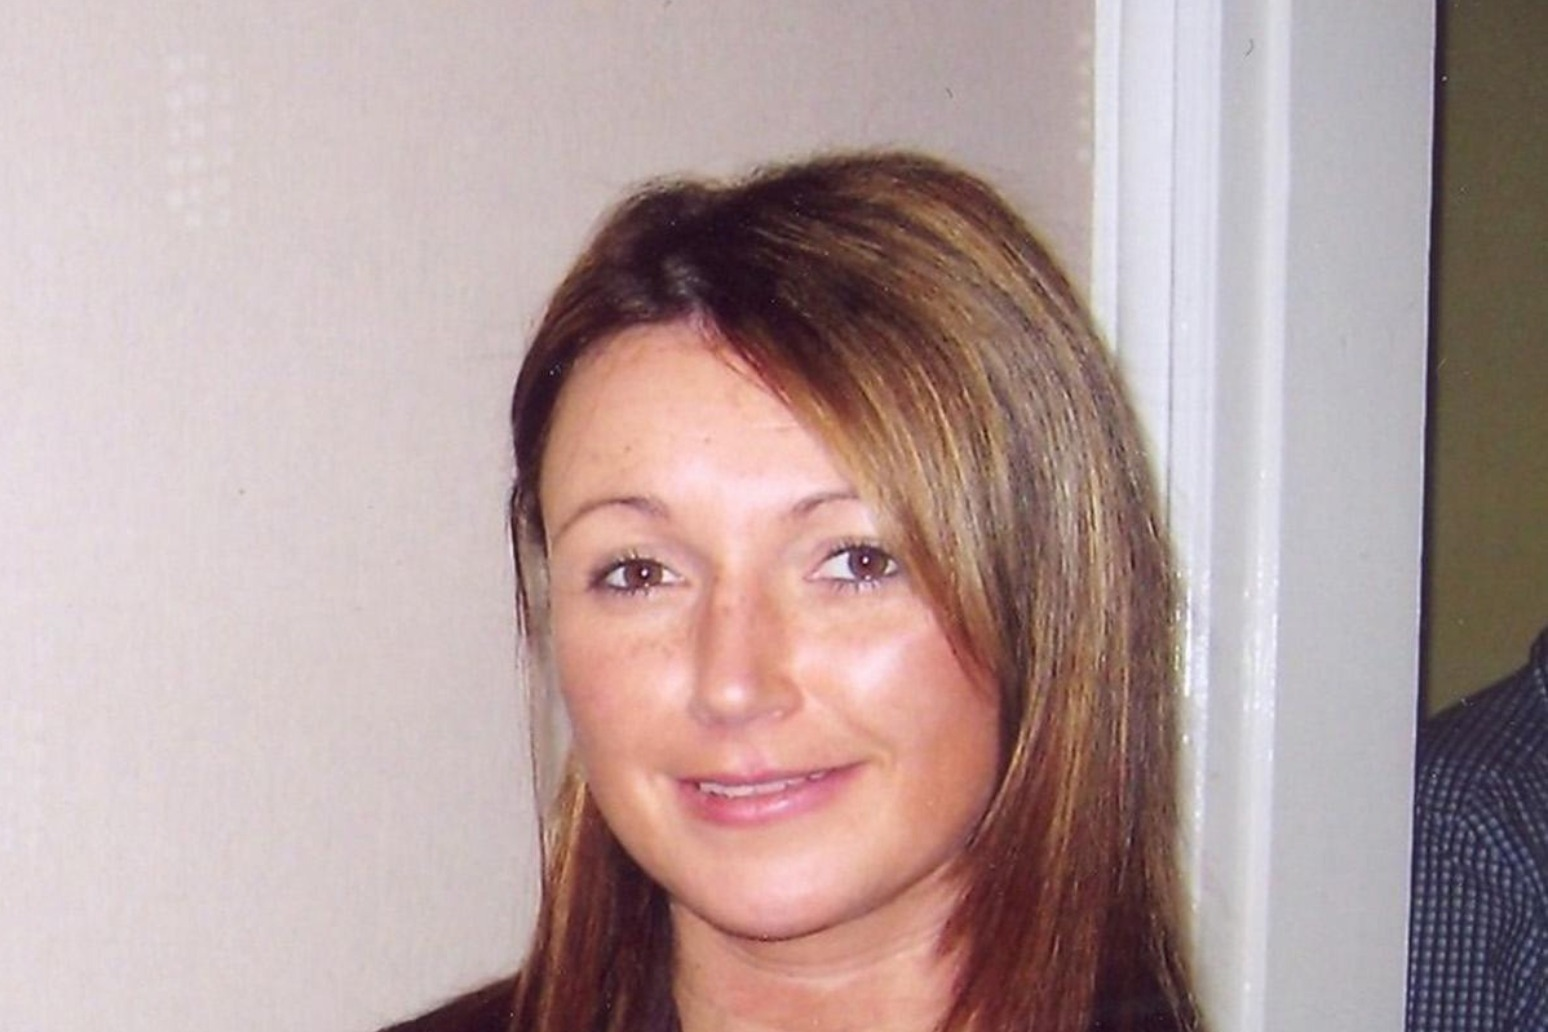 Gravel pits searched in Claudia Lawrence probe